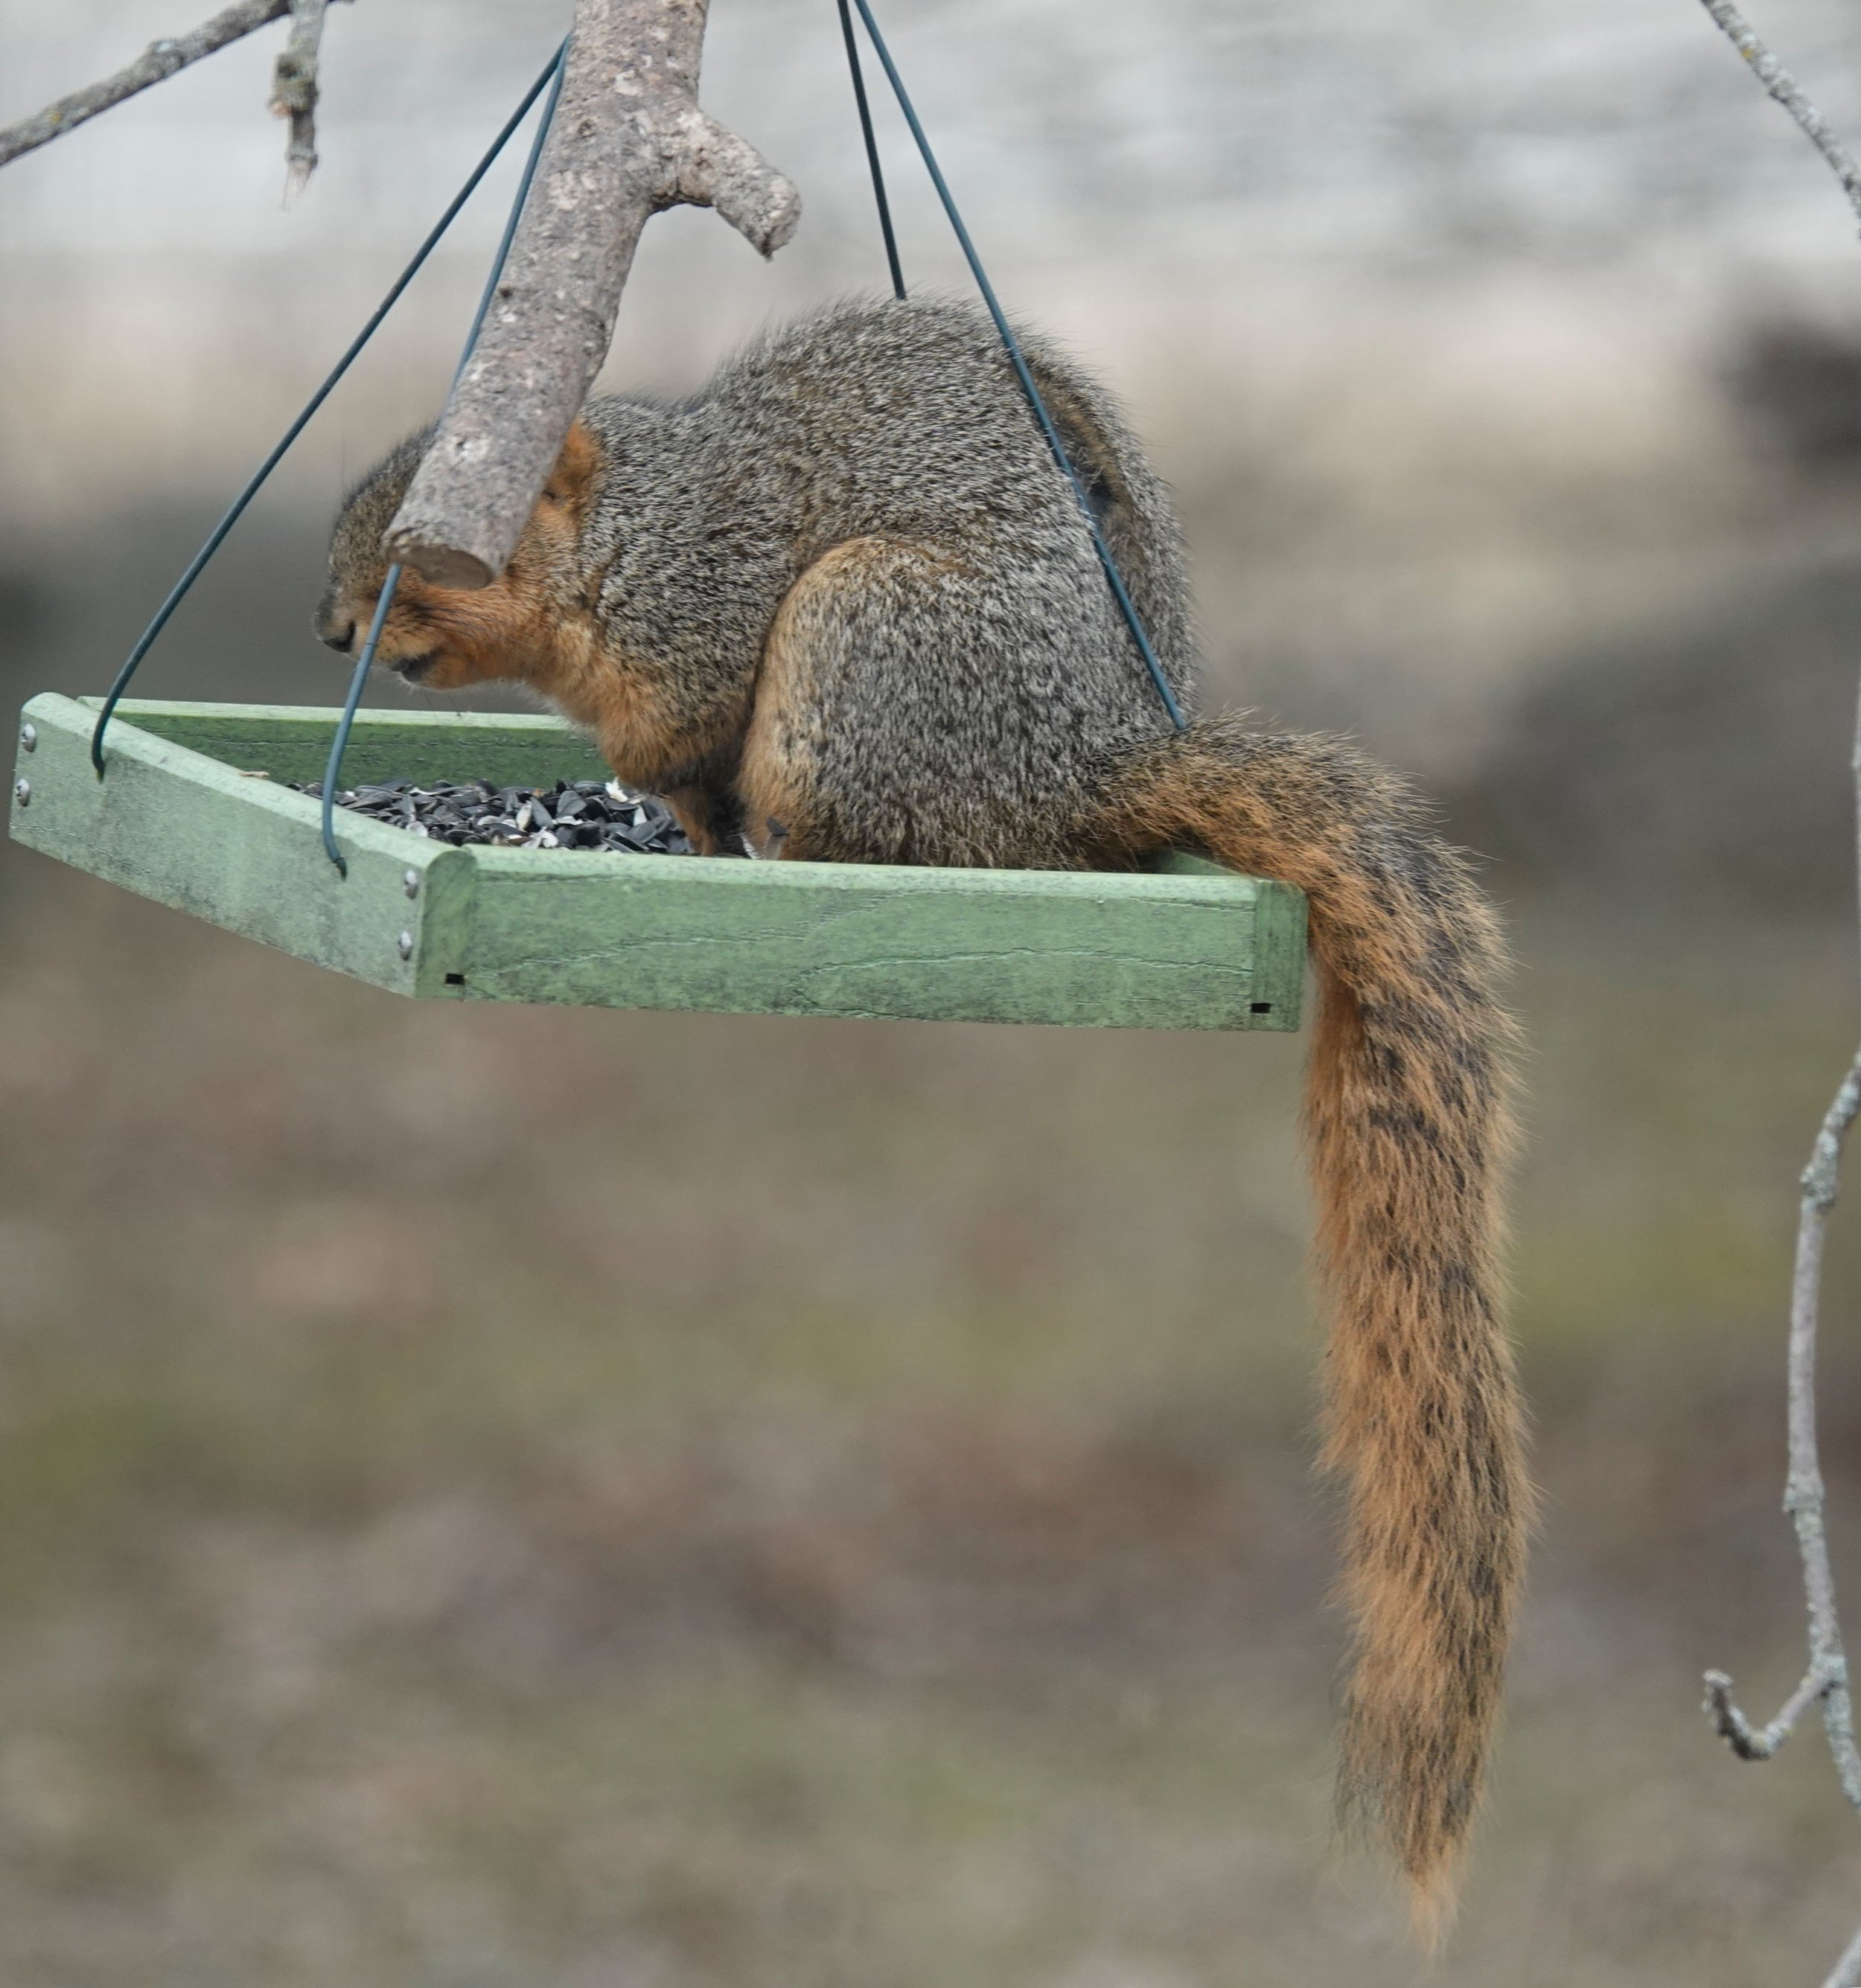 Our yard has a number of bird feeders with furry tails.